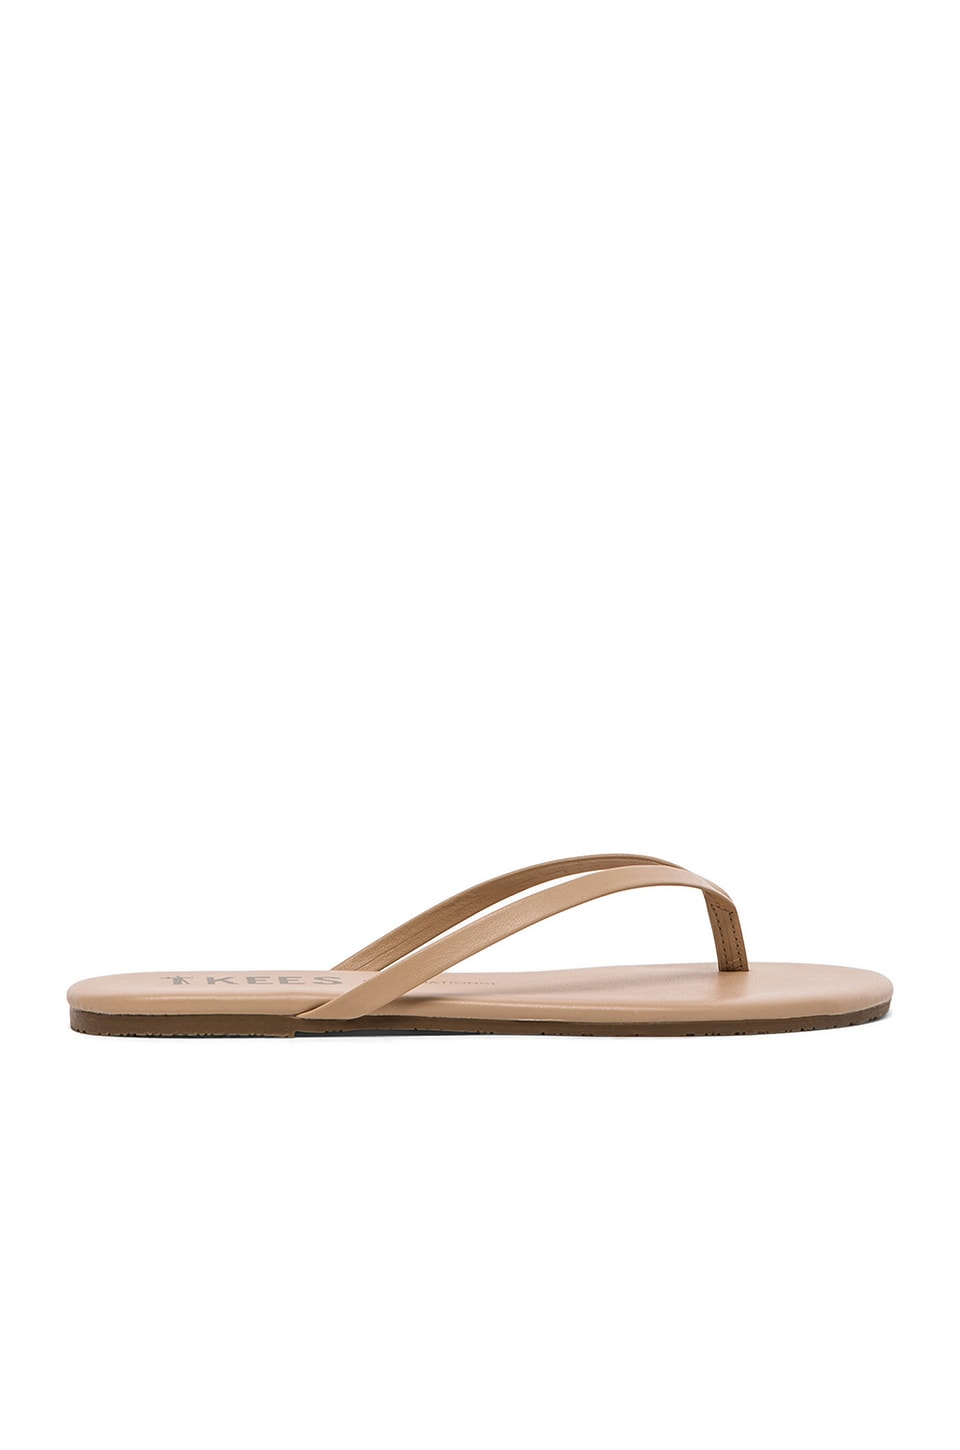 TKEES Sandal in Sunkissed